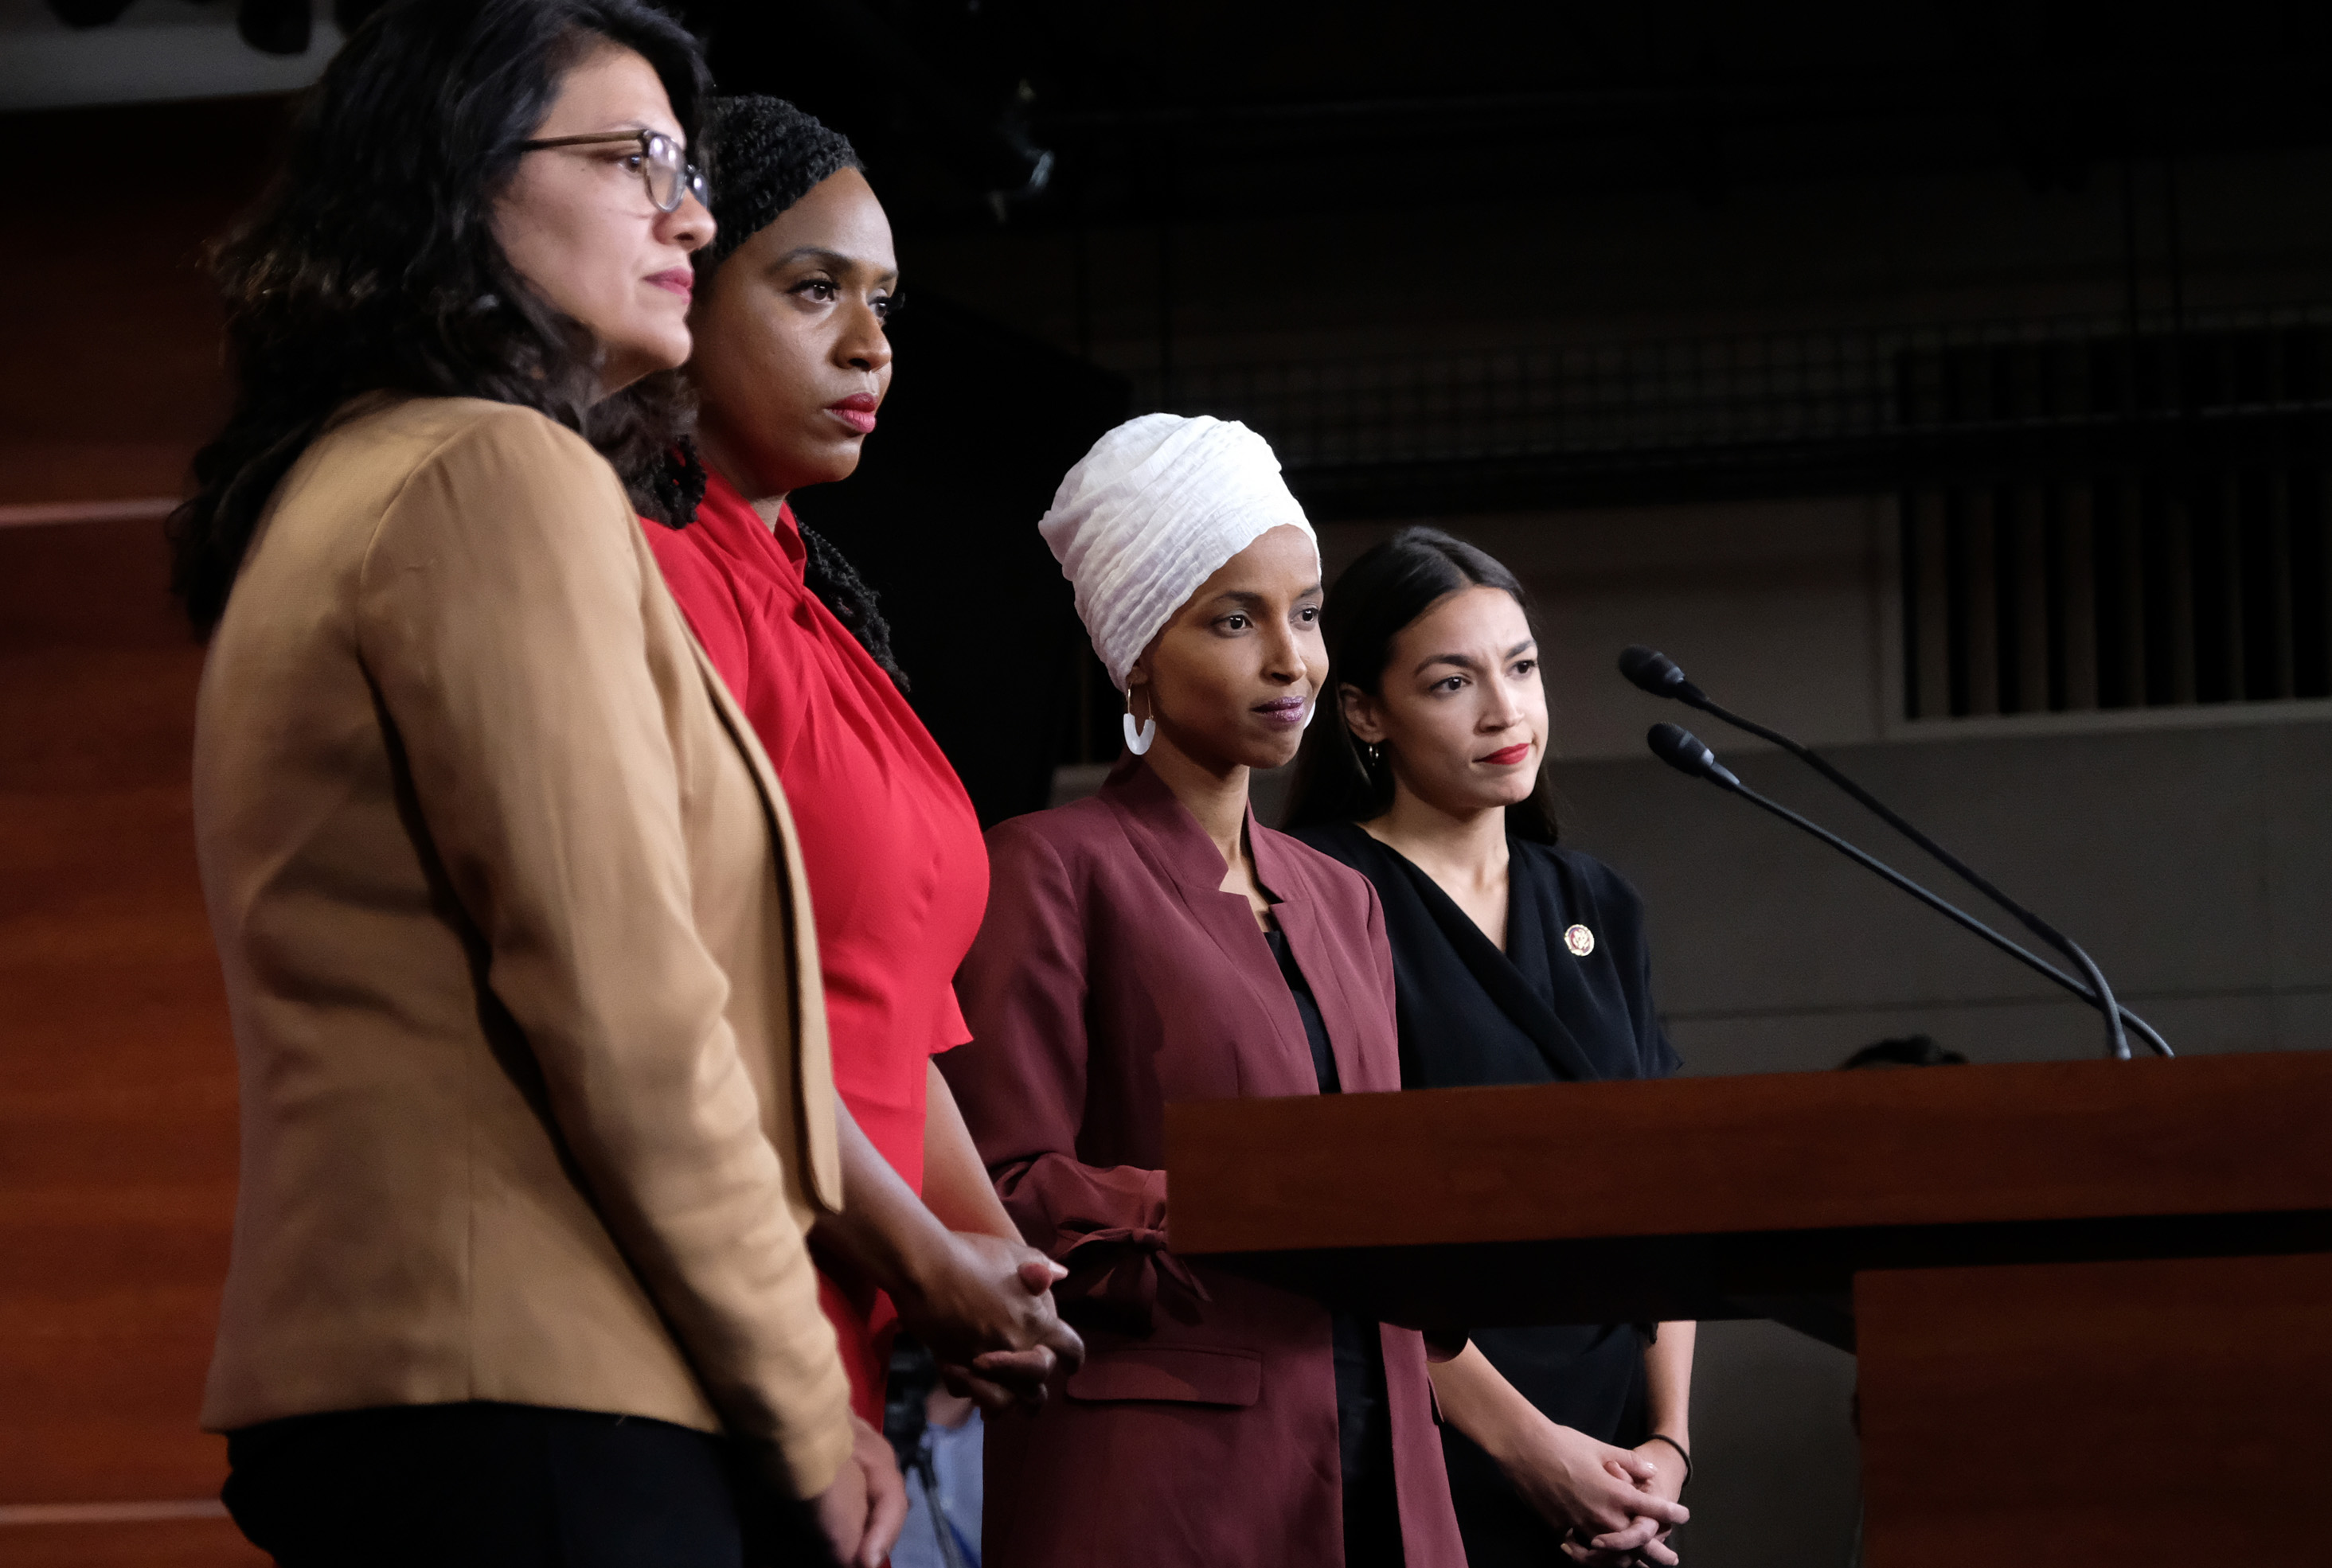 U.S. Rep. Rashida Tlaib (D-MI), Rep. Ayanna Pressley (D-MA), Rep. Ilhan Omar (D-MN), and Rep. Alexandria Ocasio-Cortez (D-NY) at a press conference at the U.S. Capitol on July 15, 2019 in Washington, DC